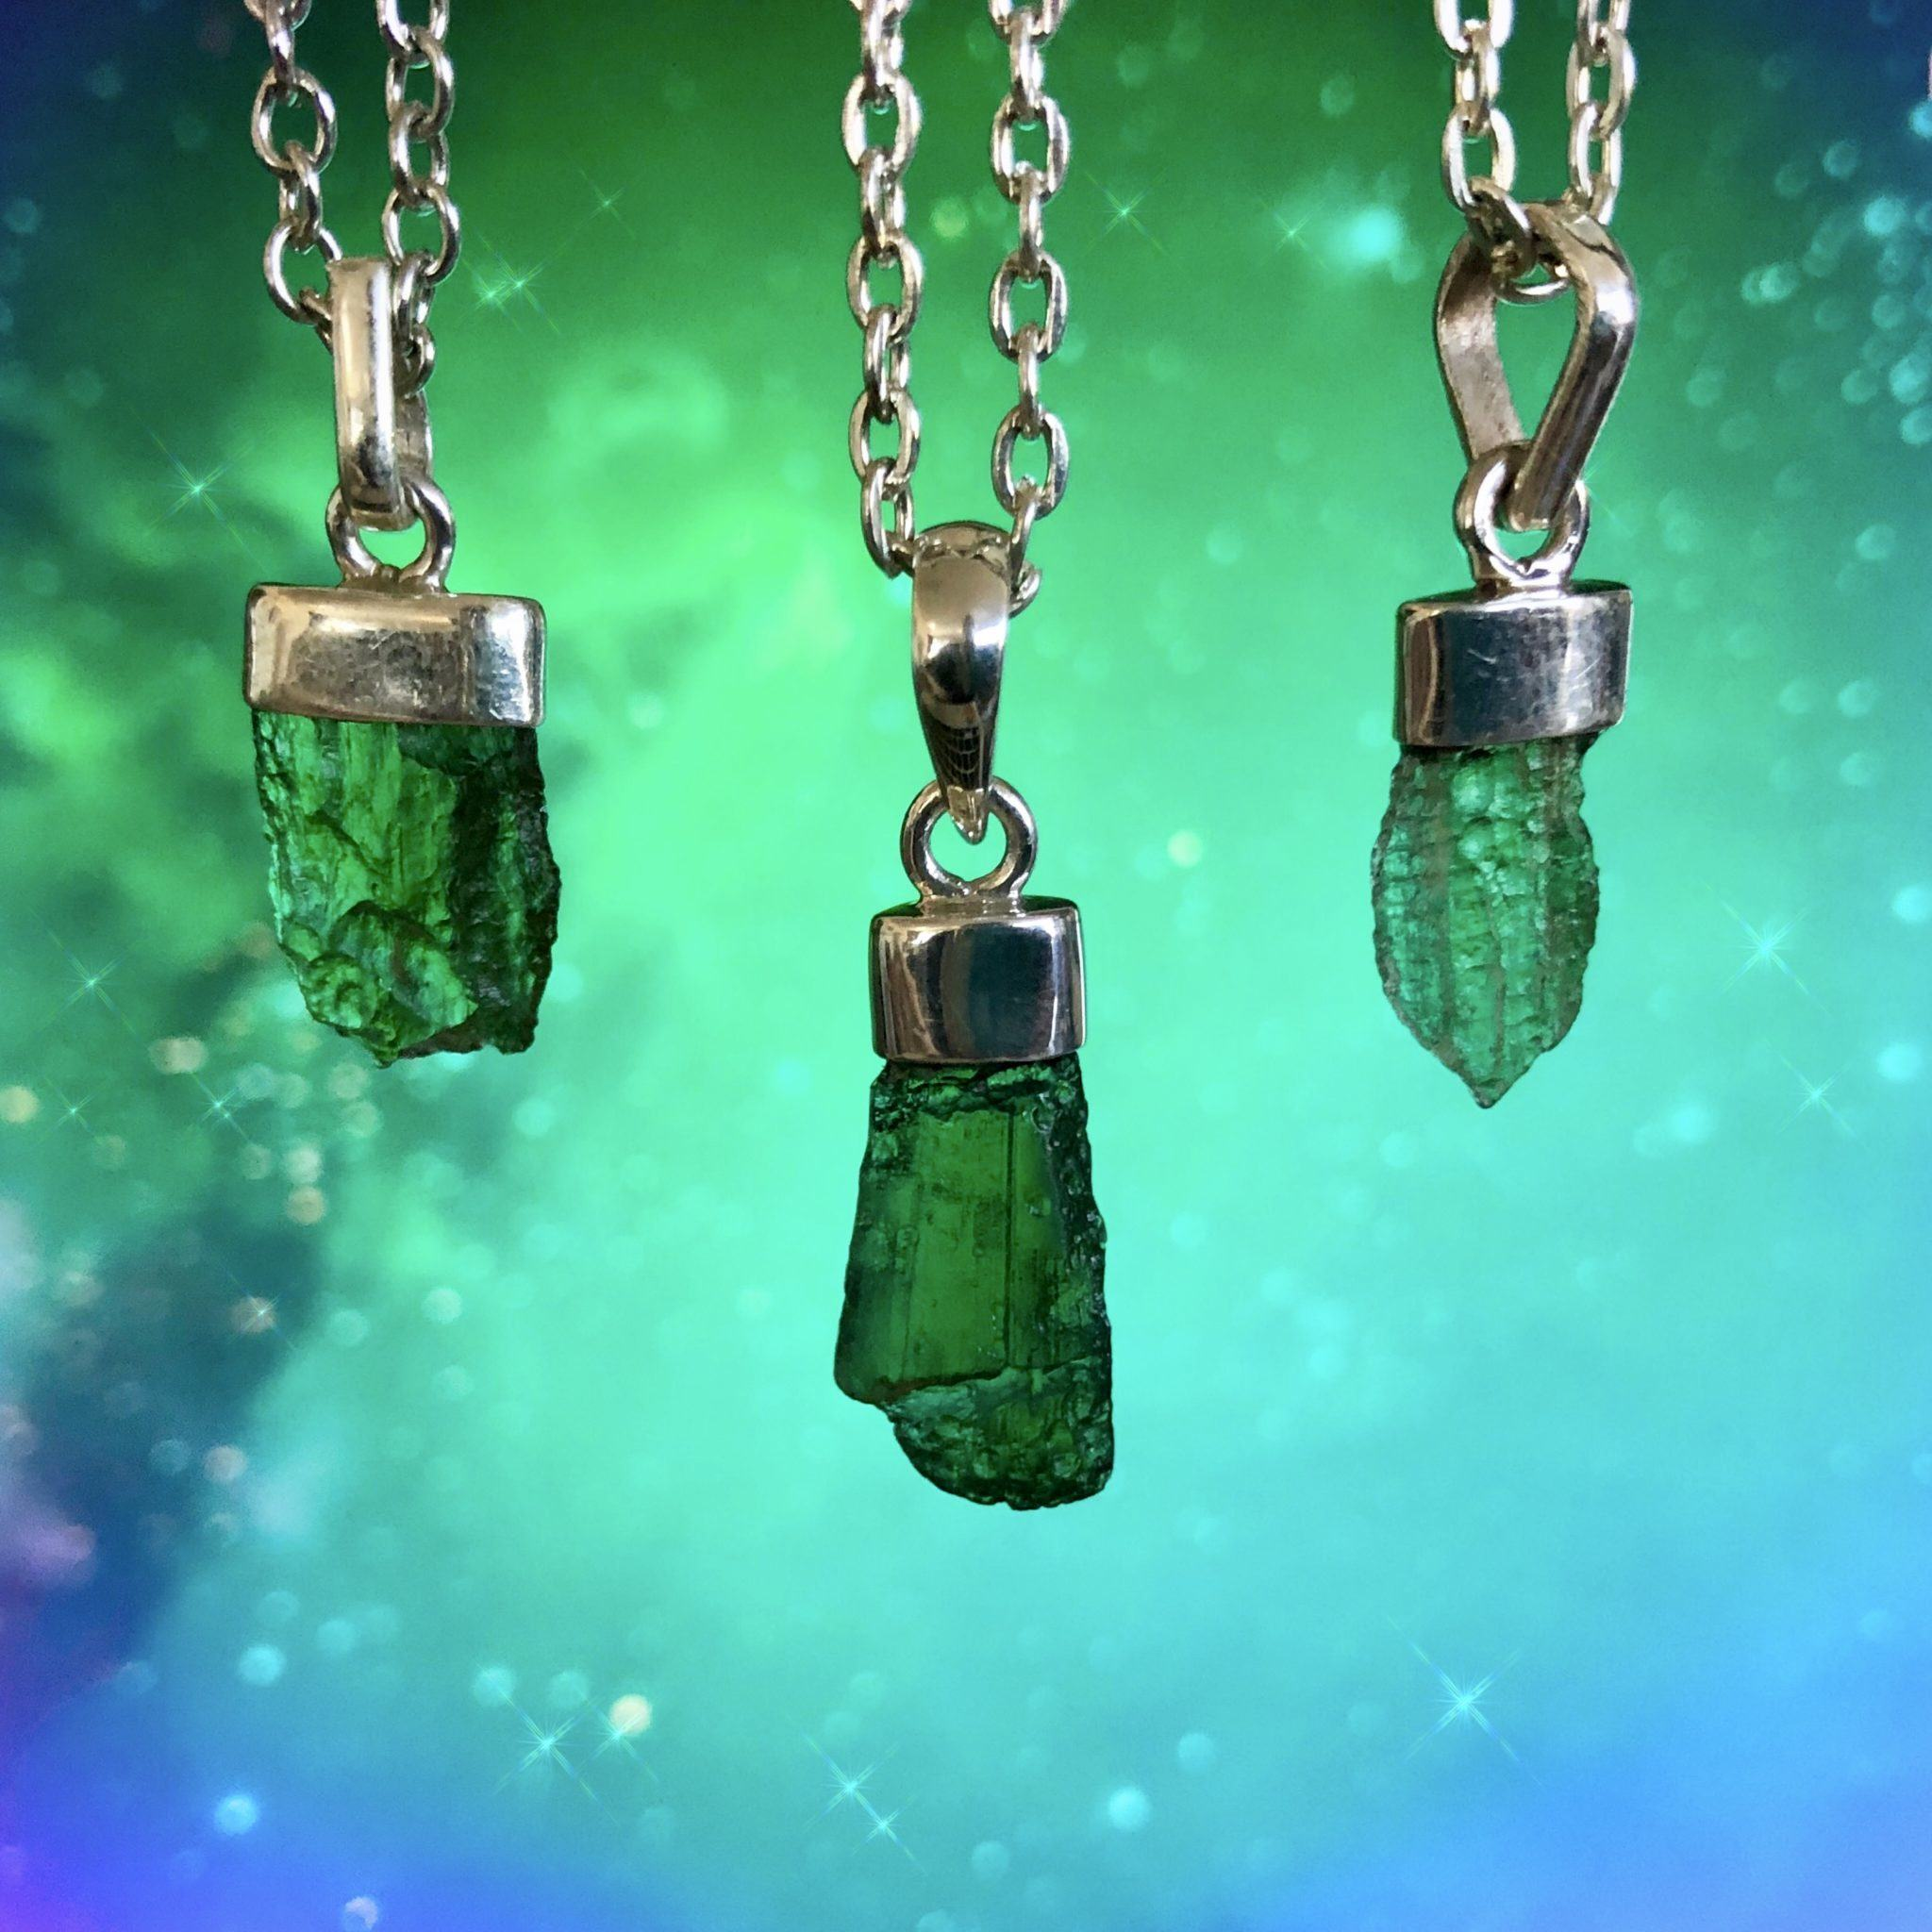 Moldavite Pendants for extraterrestrial contact and psychic expansion